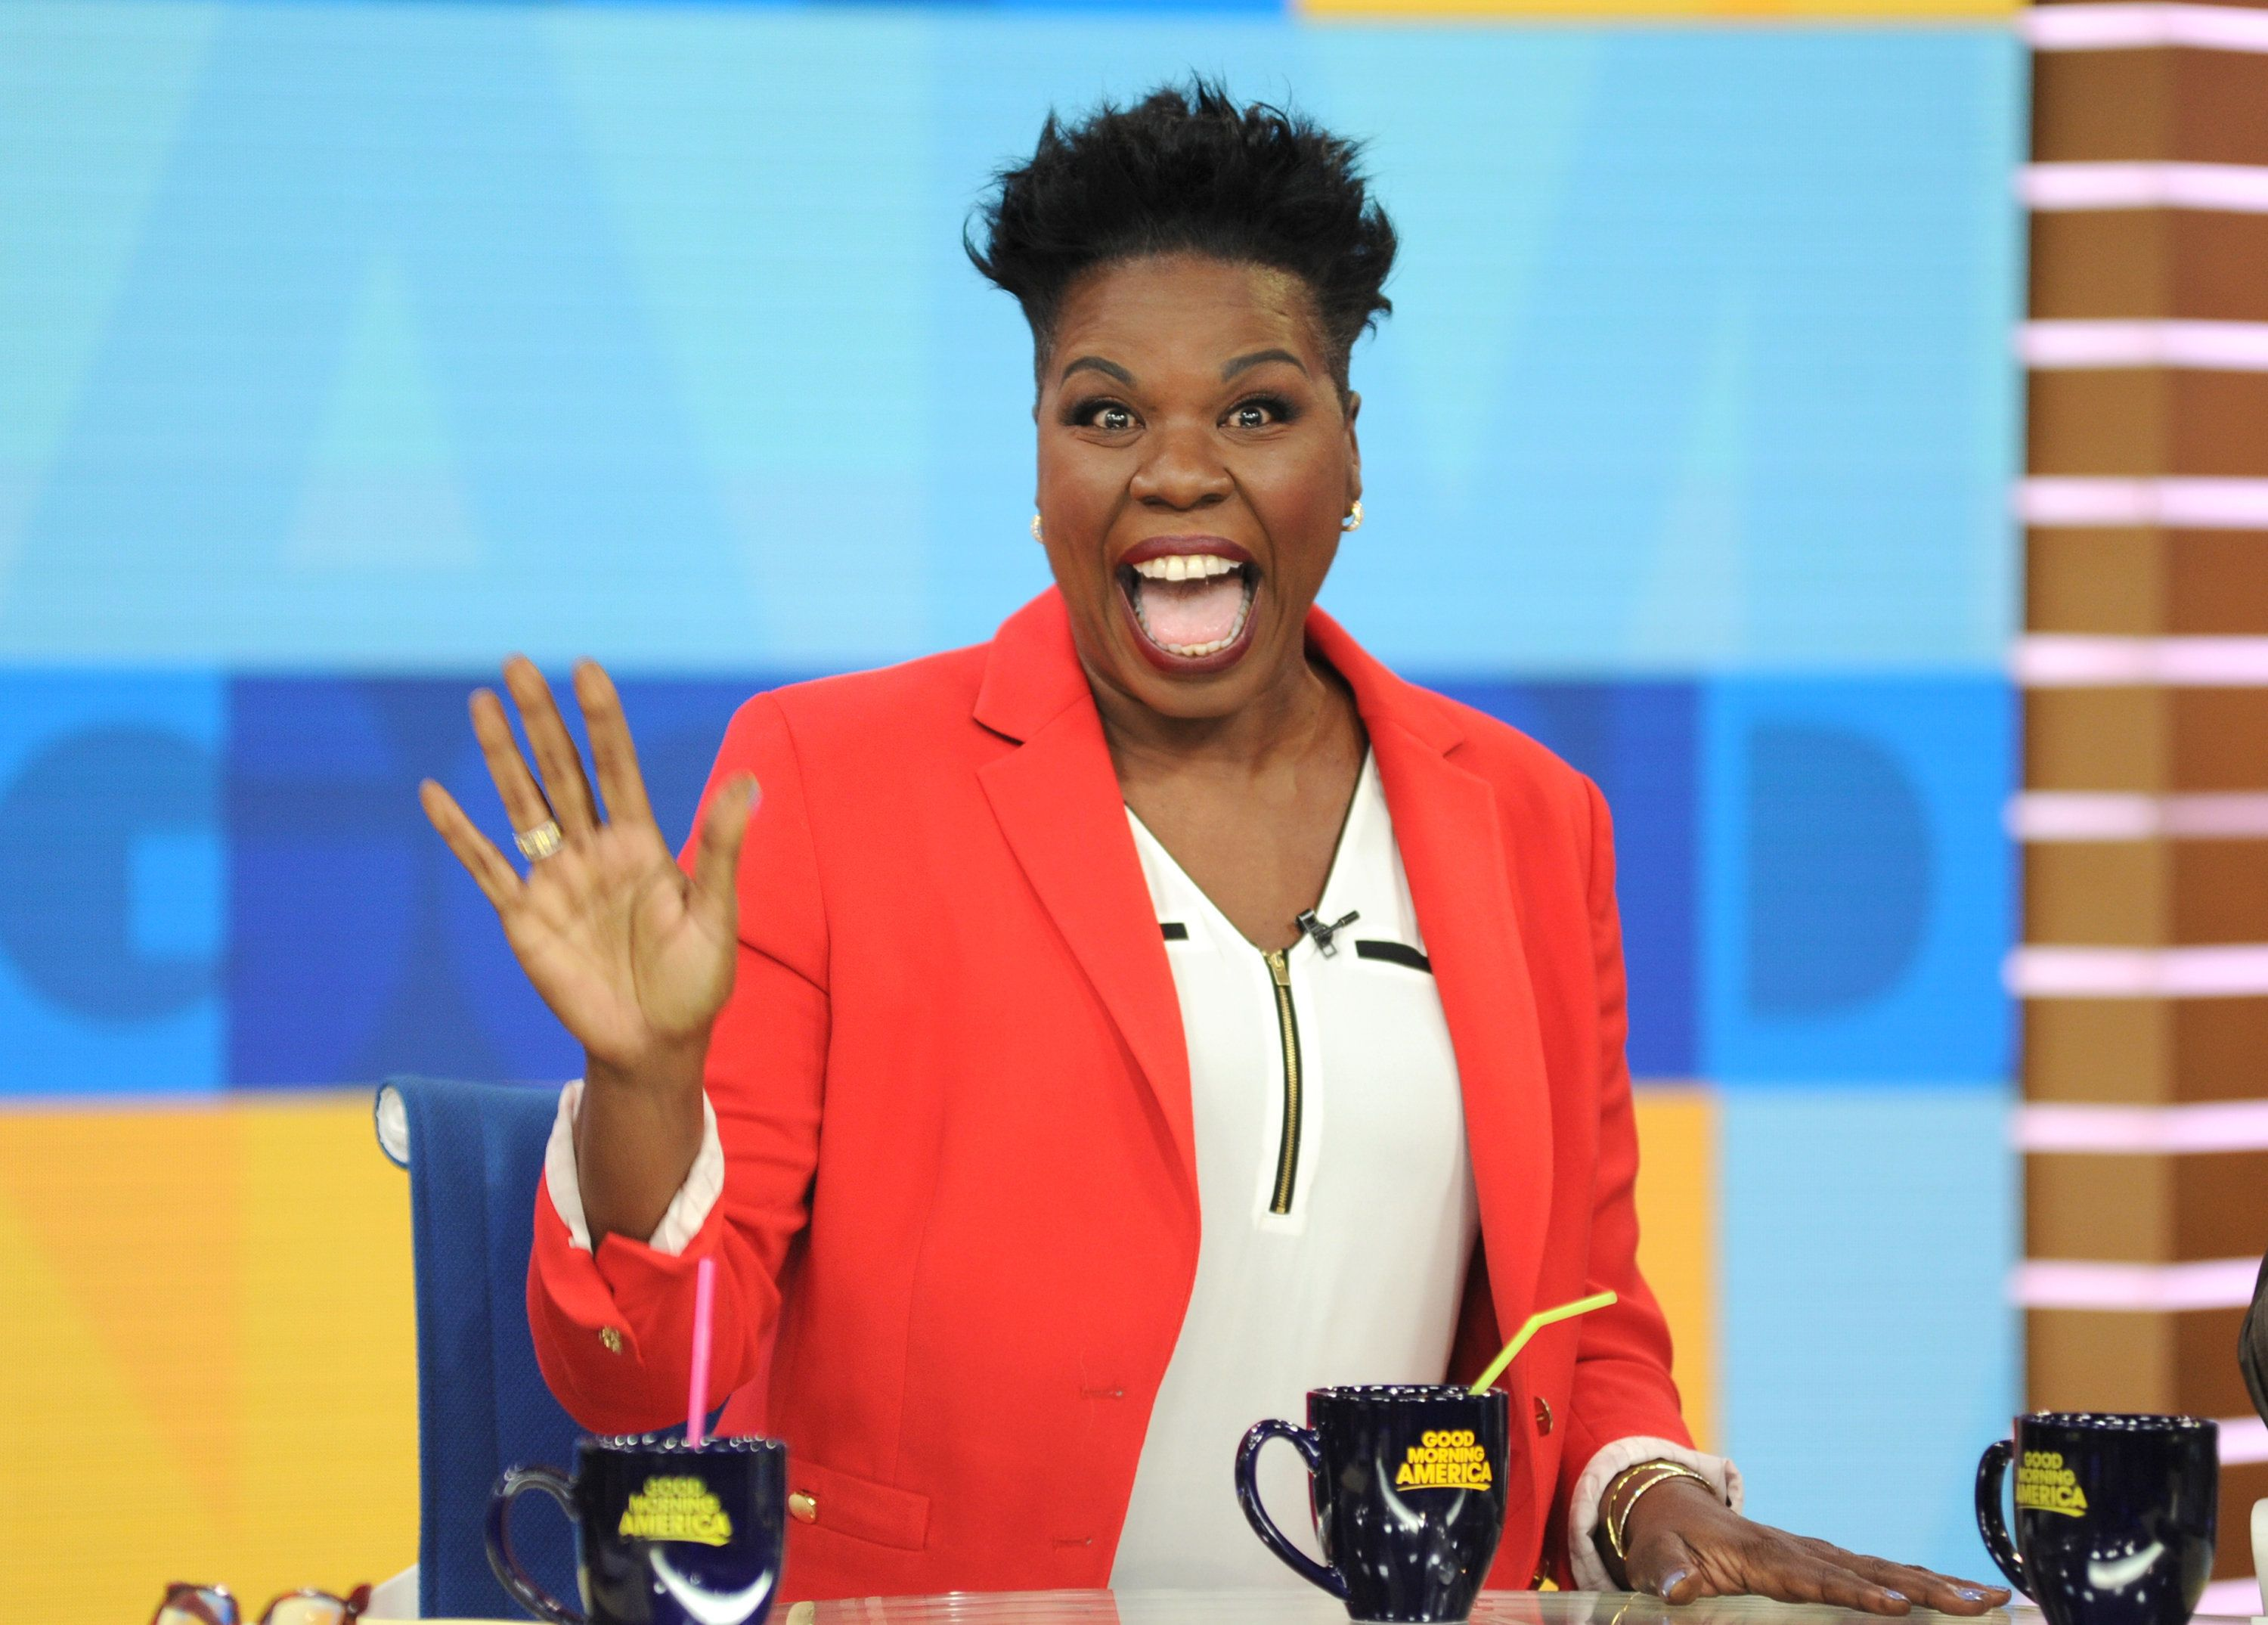 GOOD MORNING AMERICA  Leslie Jones is a guest on 'Good Morning America,' Monday, June 12, 2017, airing on the ABC Television Network.  (Photo by Paula Lobo/ABC via Getty Images)  LESLIE JONES